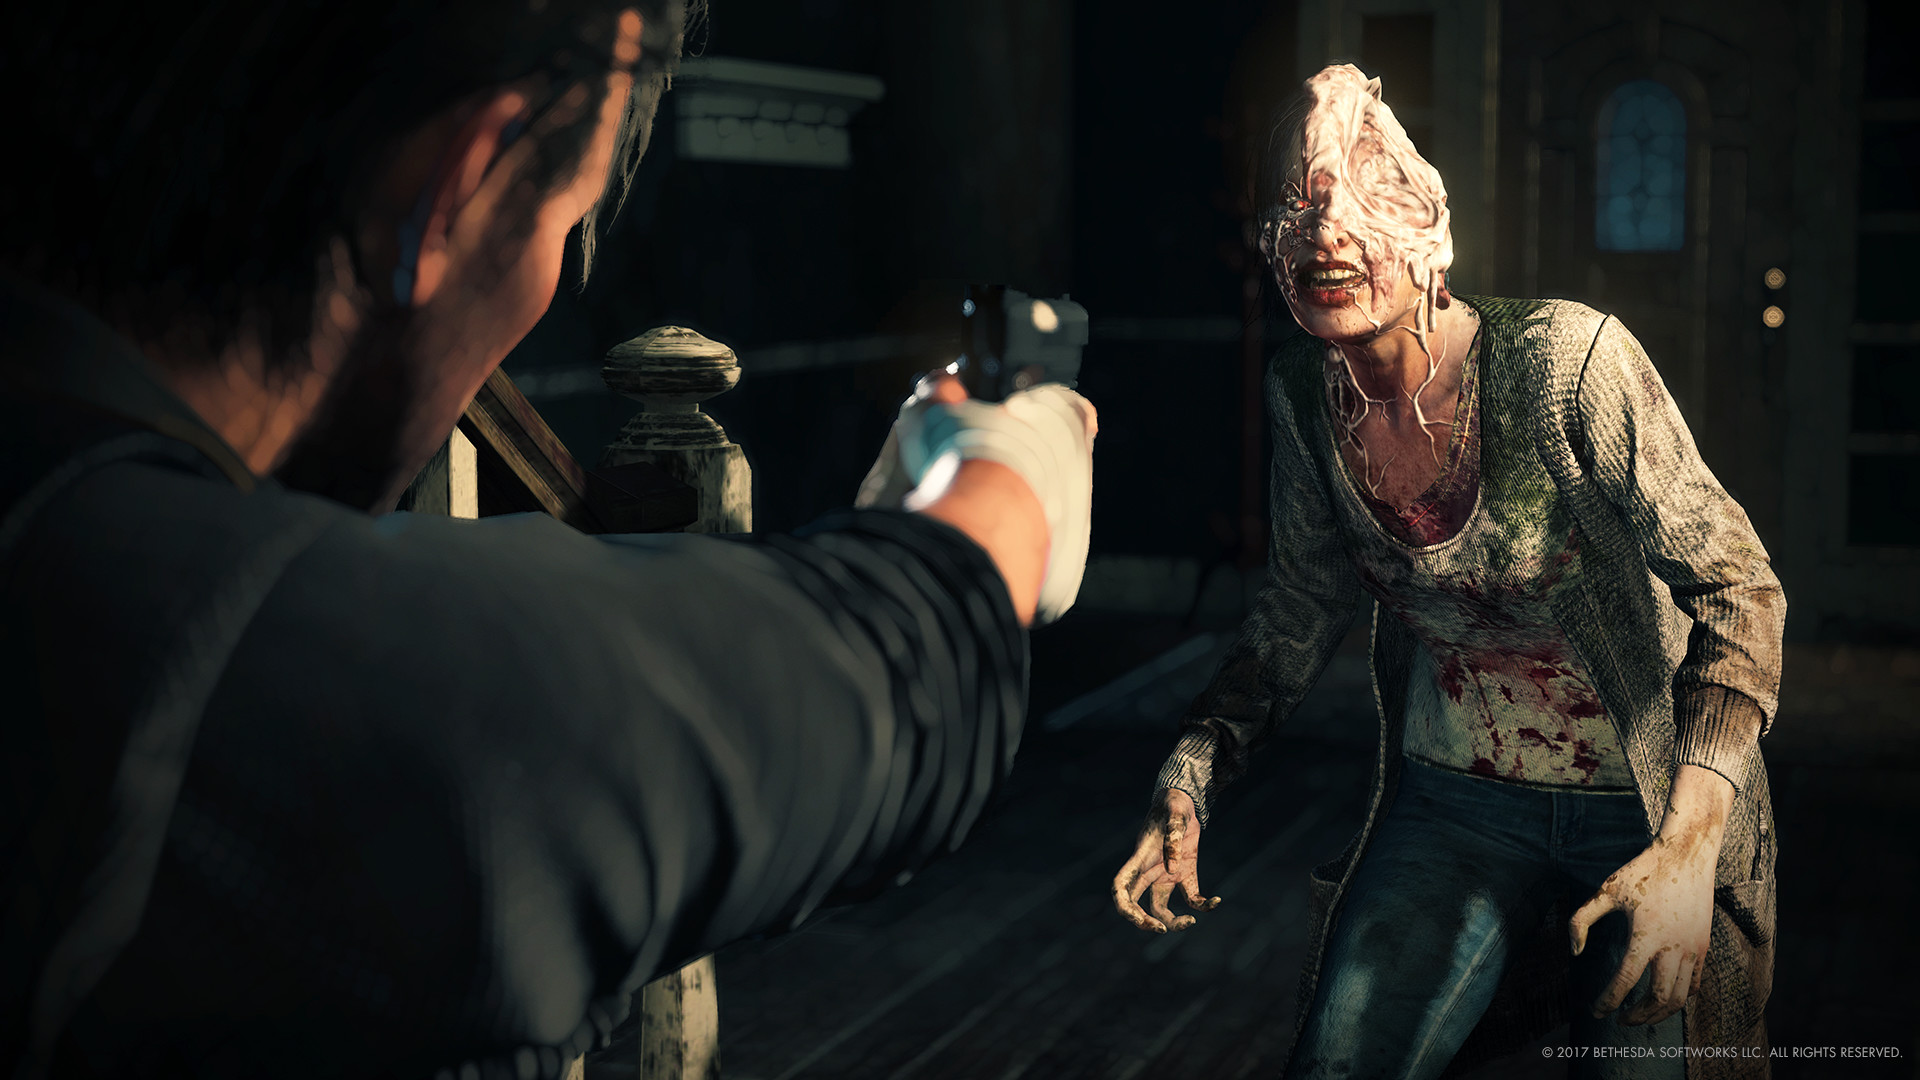 download the evil within 2-codex cracked full version singlelink iso rar multi 12 language free for pc